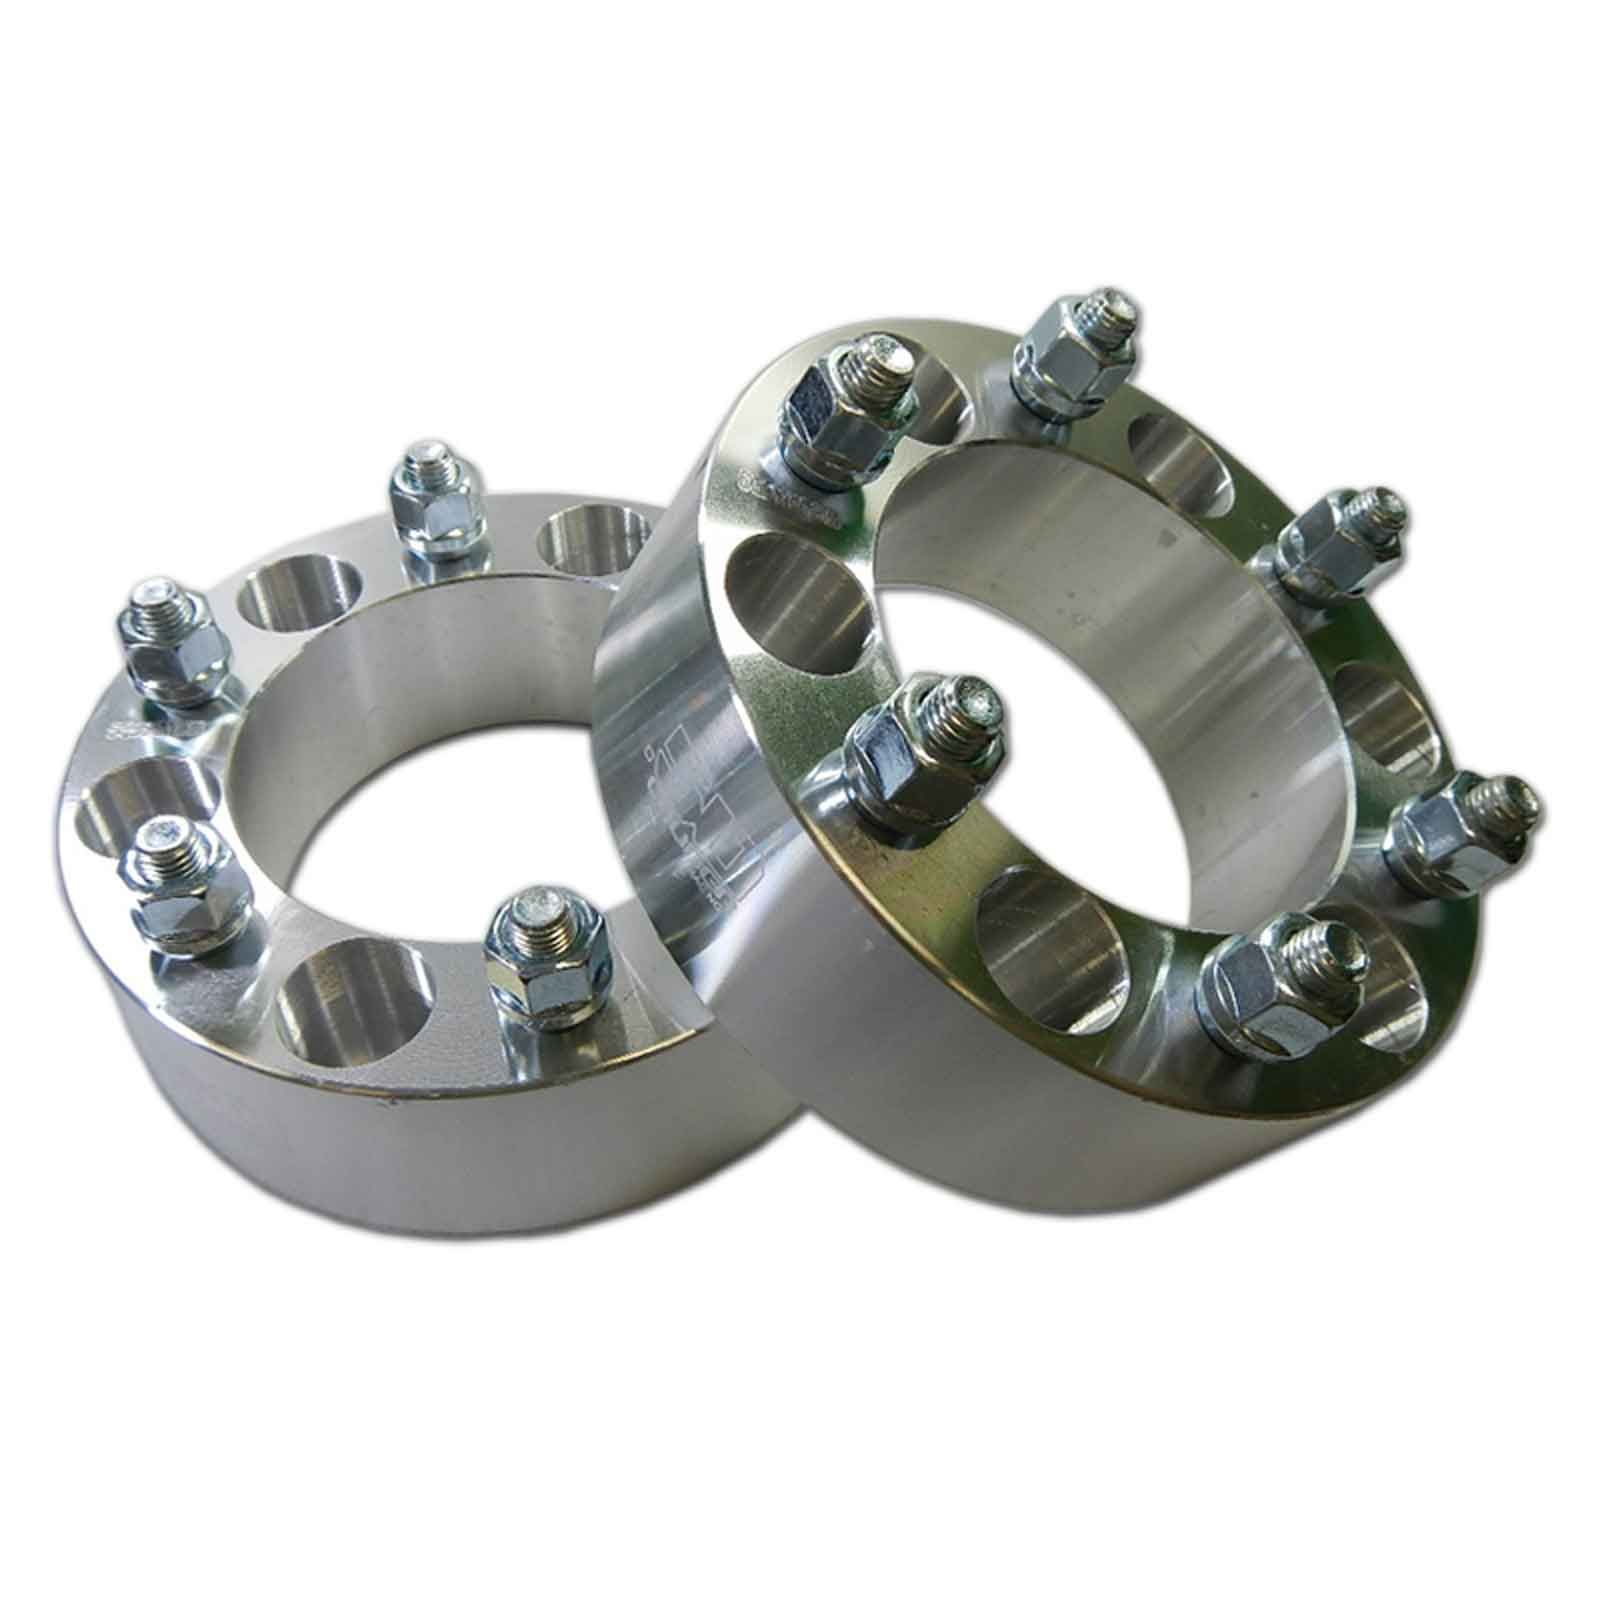 "Pair 6x5.5 139.7 Wheel Spacers 2"" Thick 12mm Lug Fit ..."